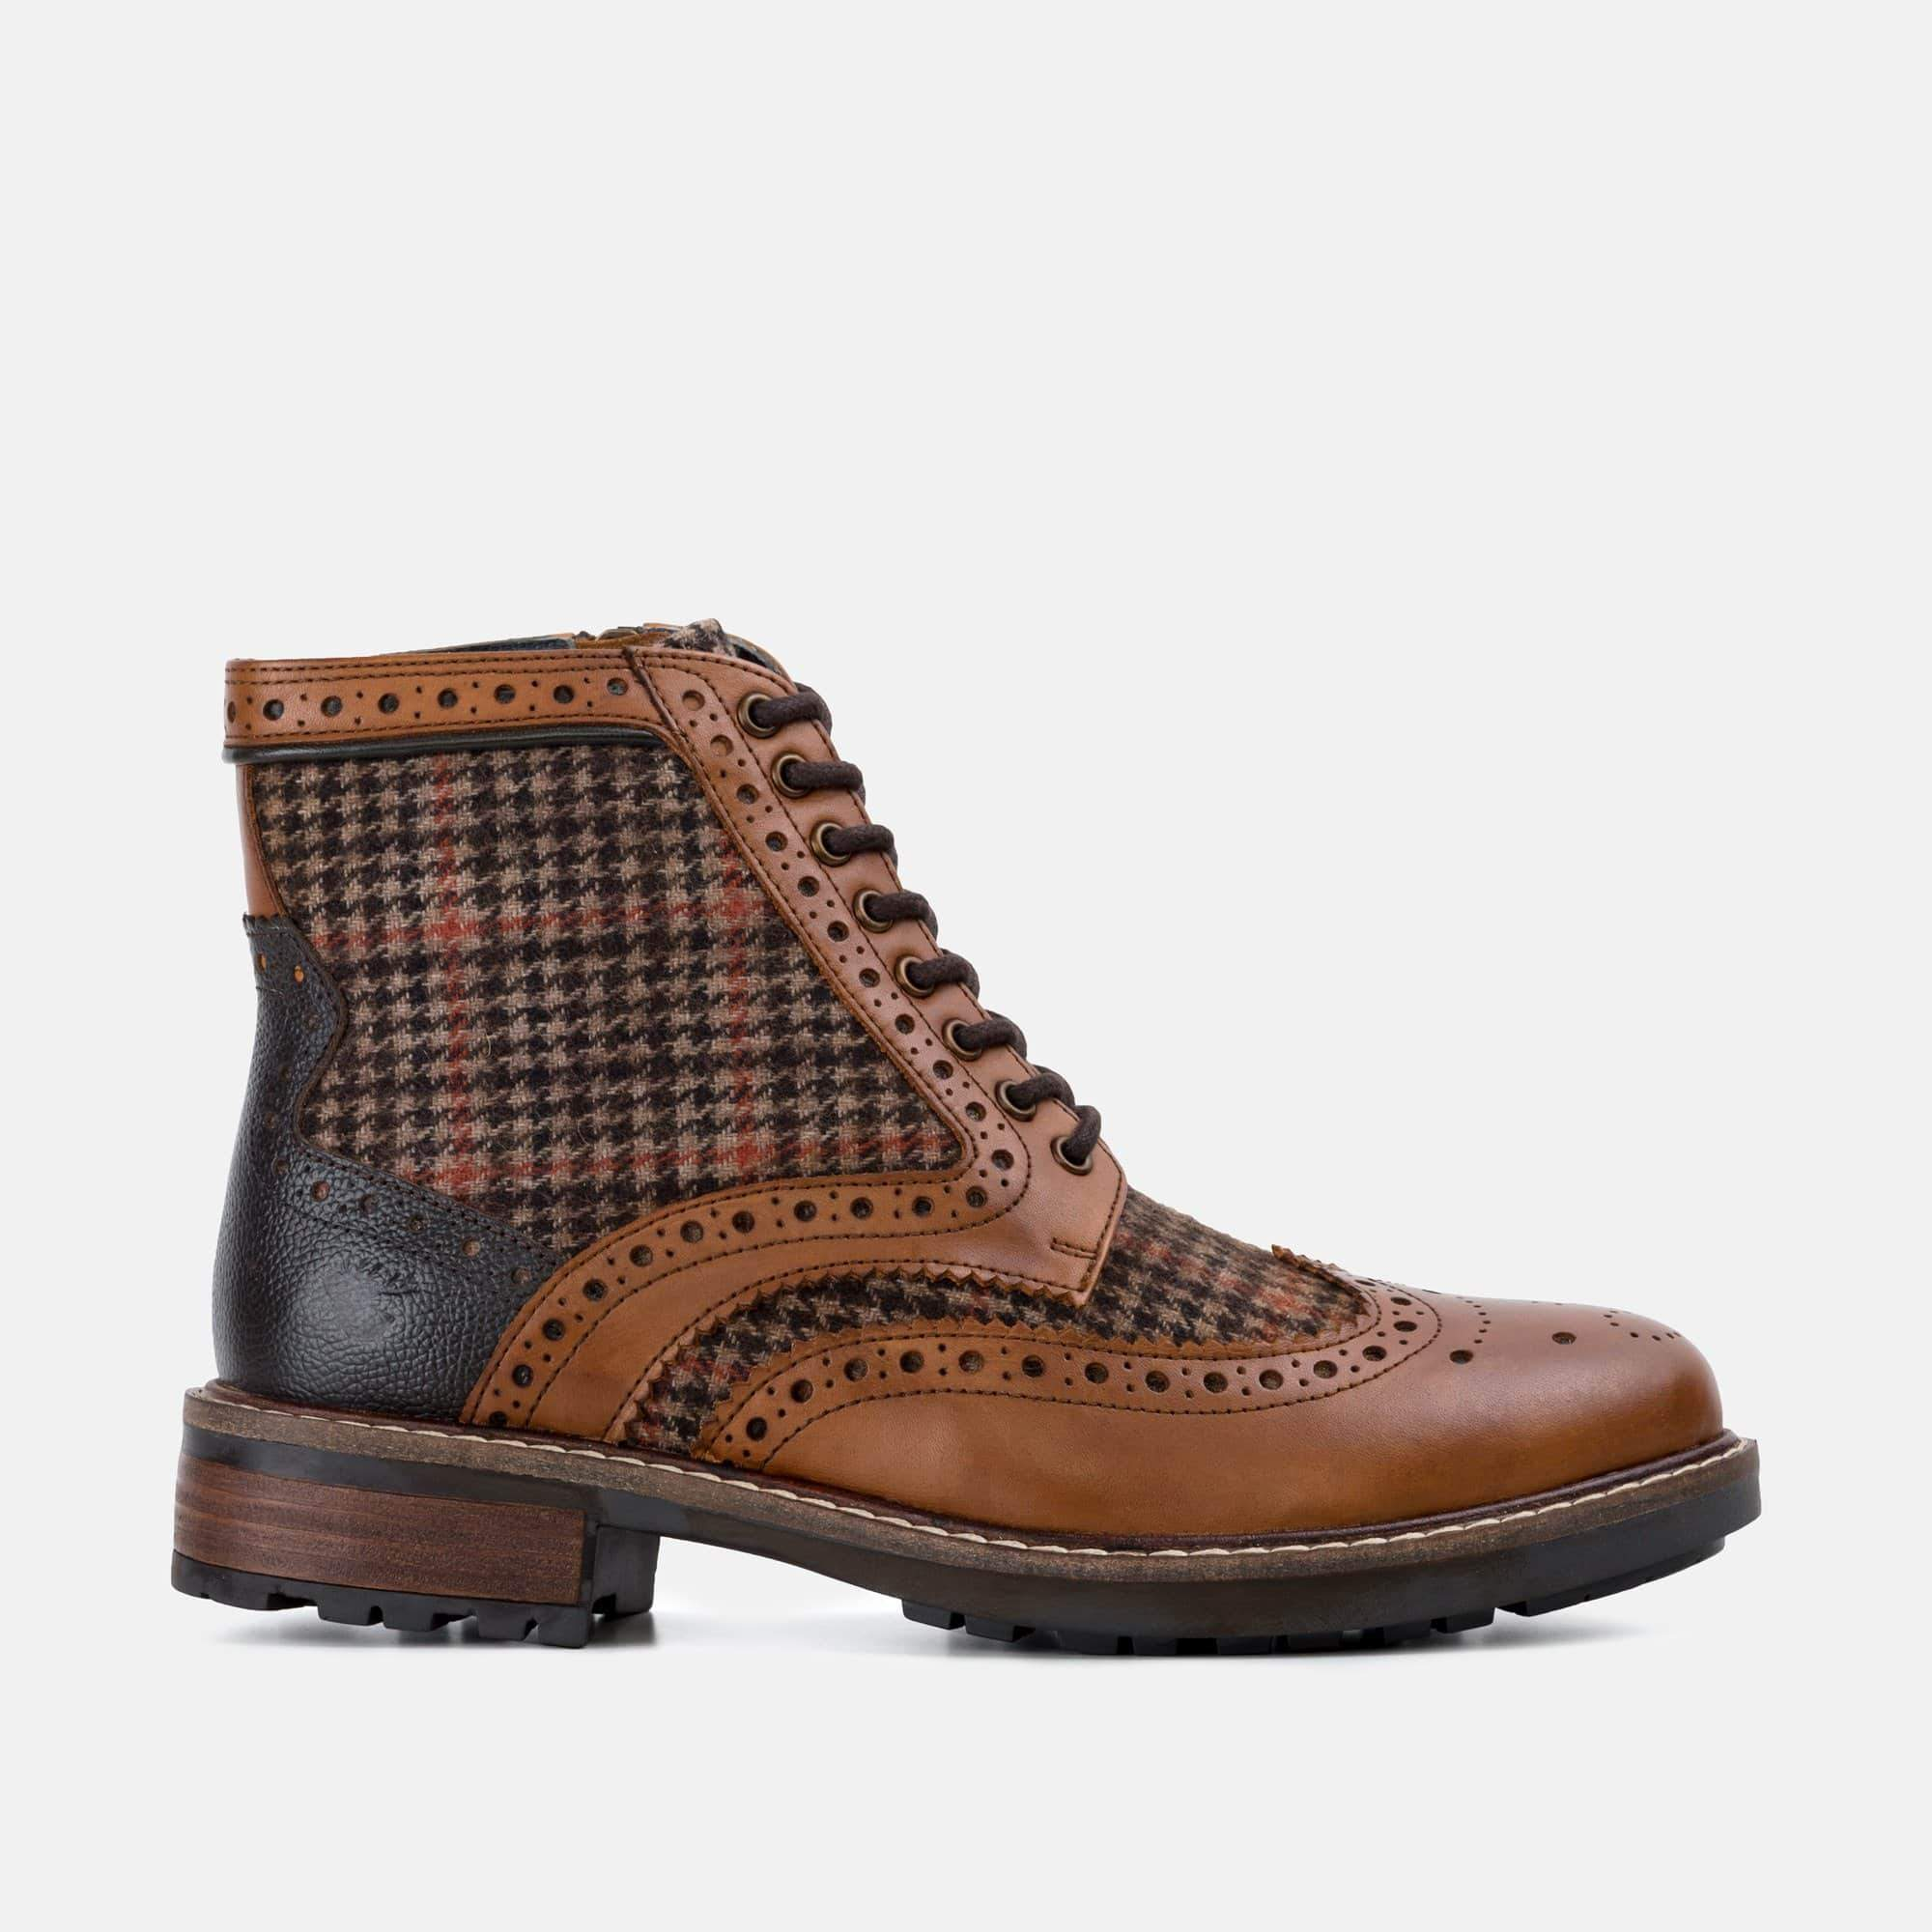 Goodwin Smith Footwear Sherwood Houndstooth Tan Leather Brogue Boot